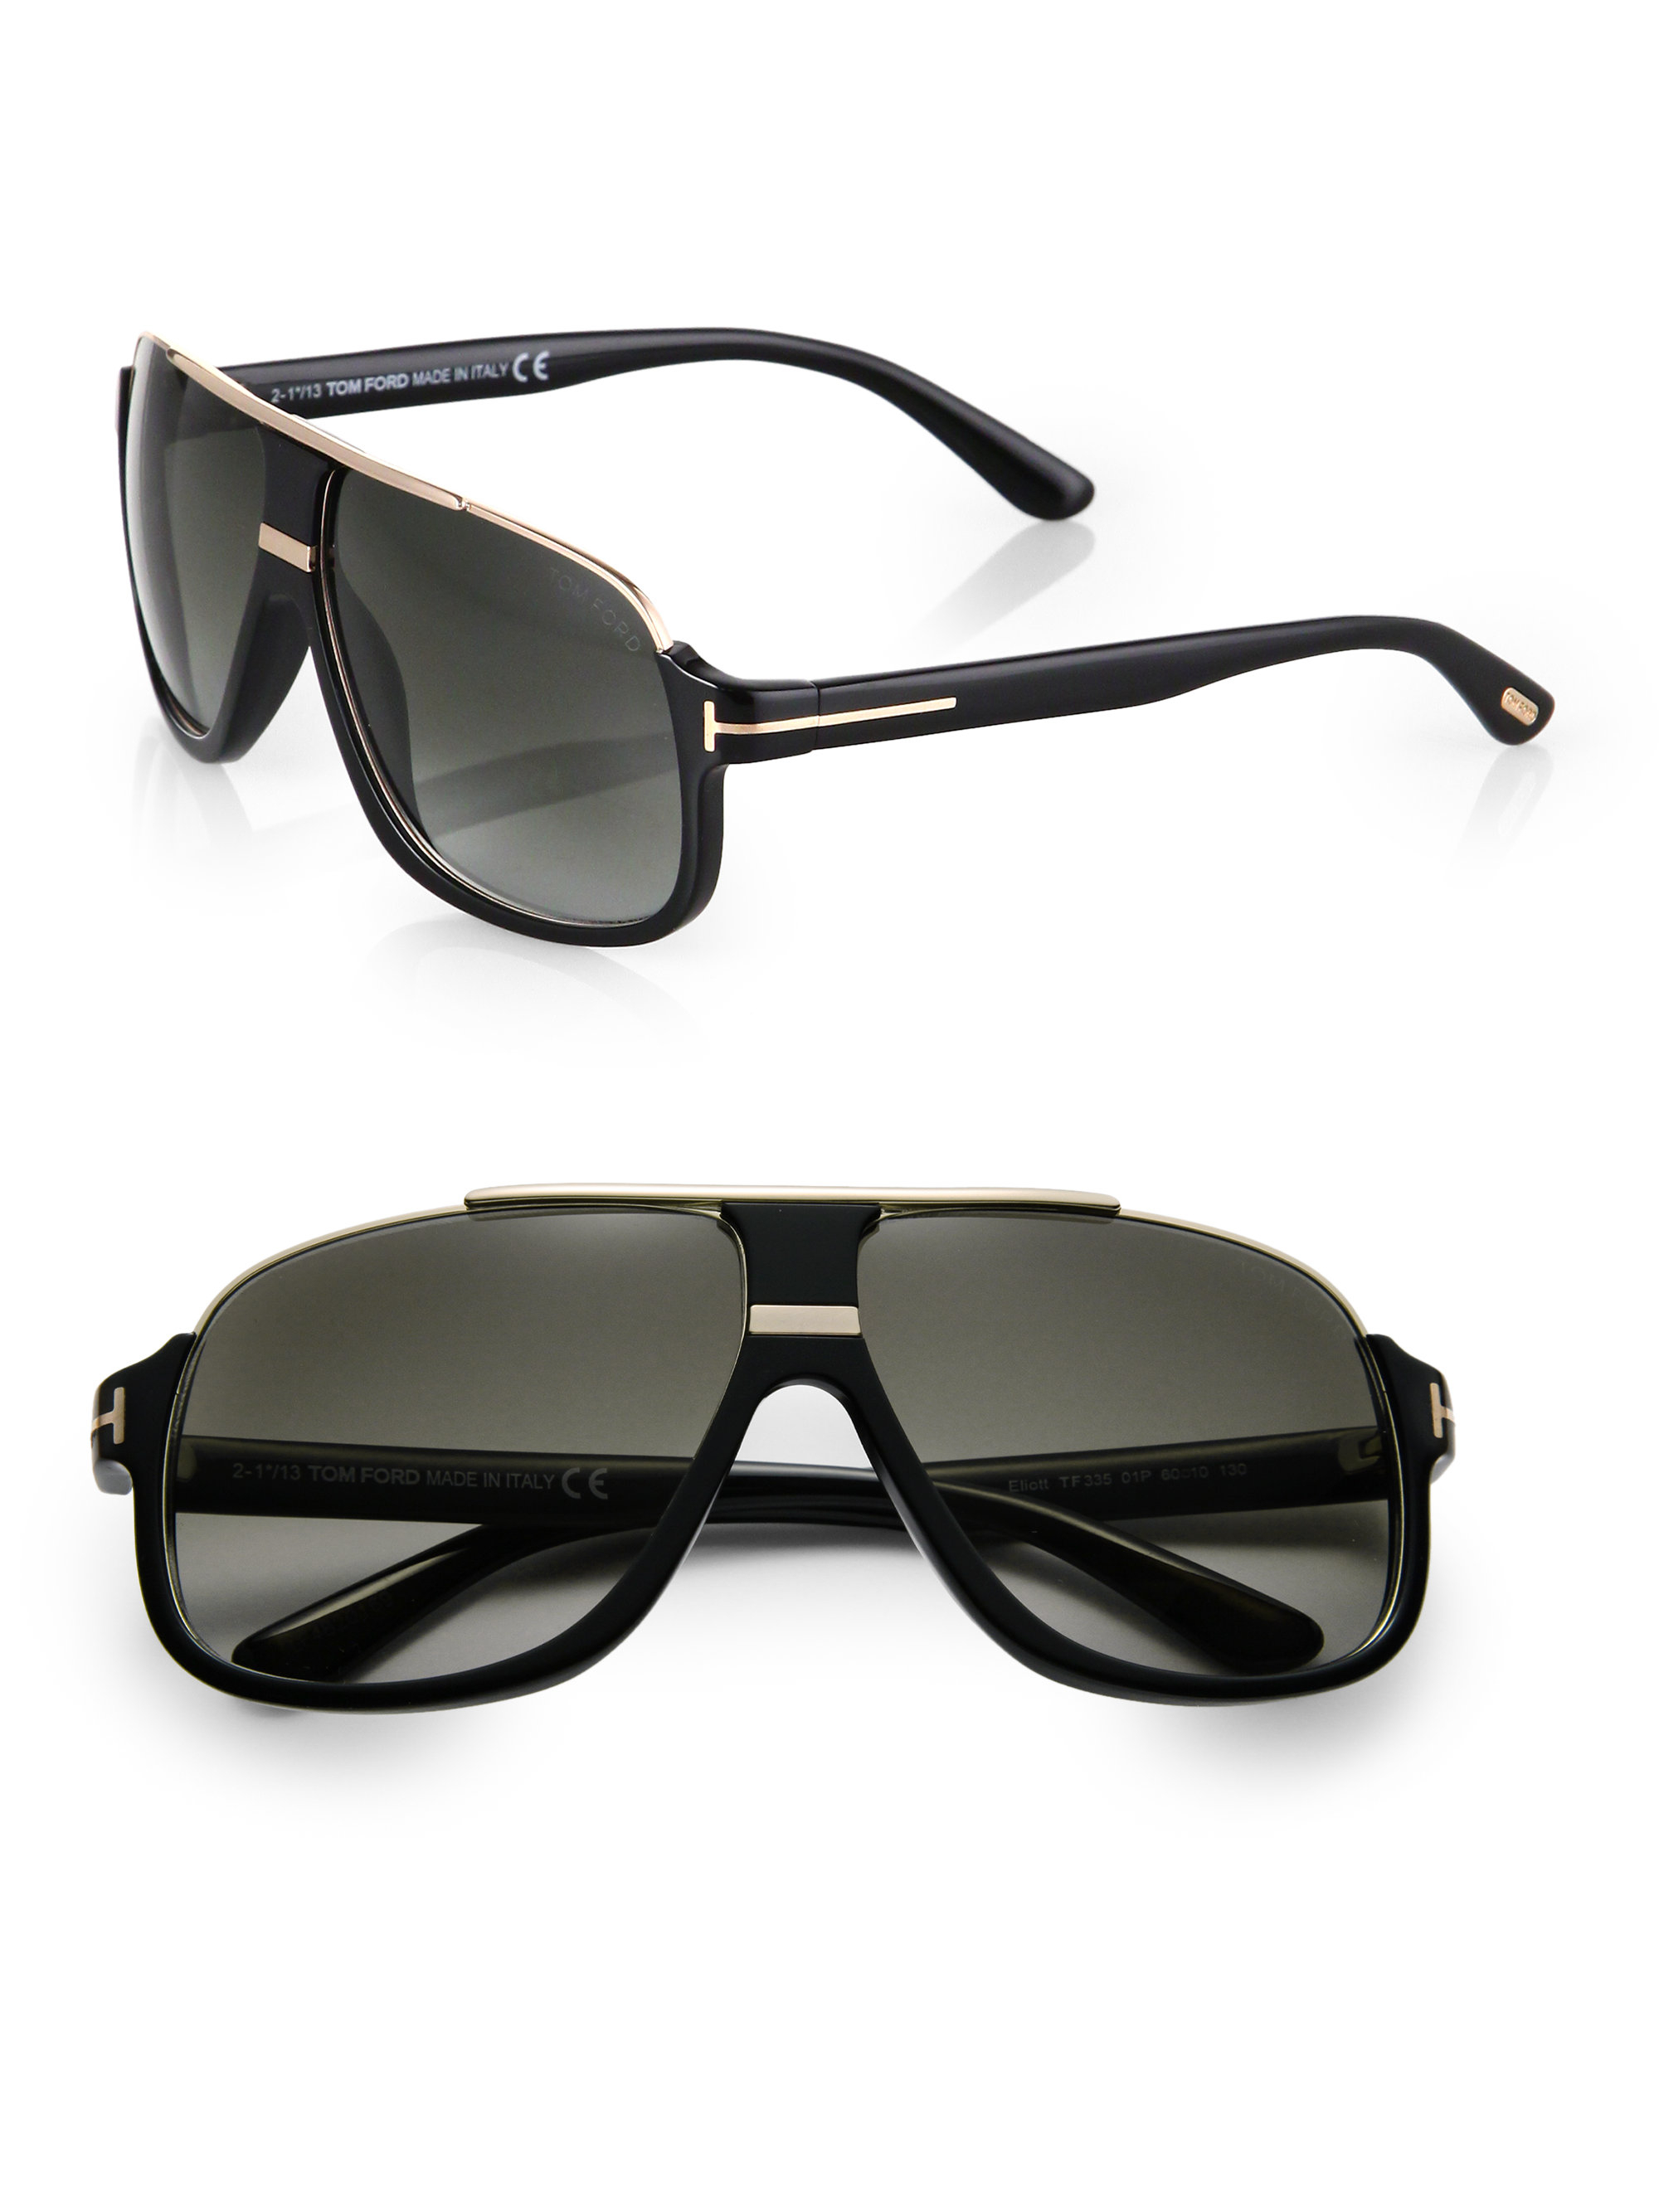 a46750f7adfc5 Tom Ford Eliot Sunglasses in Black for Men - Lyst